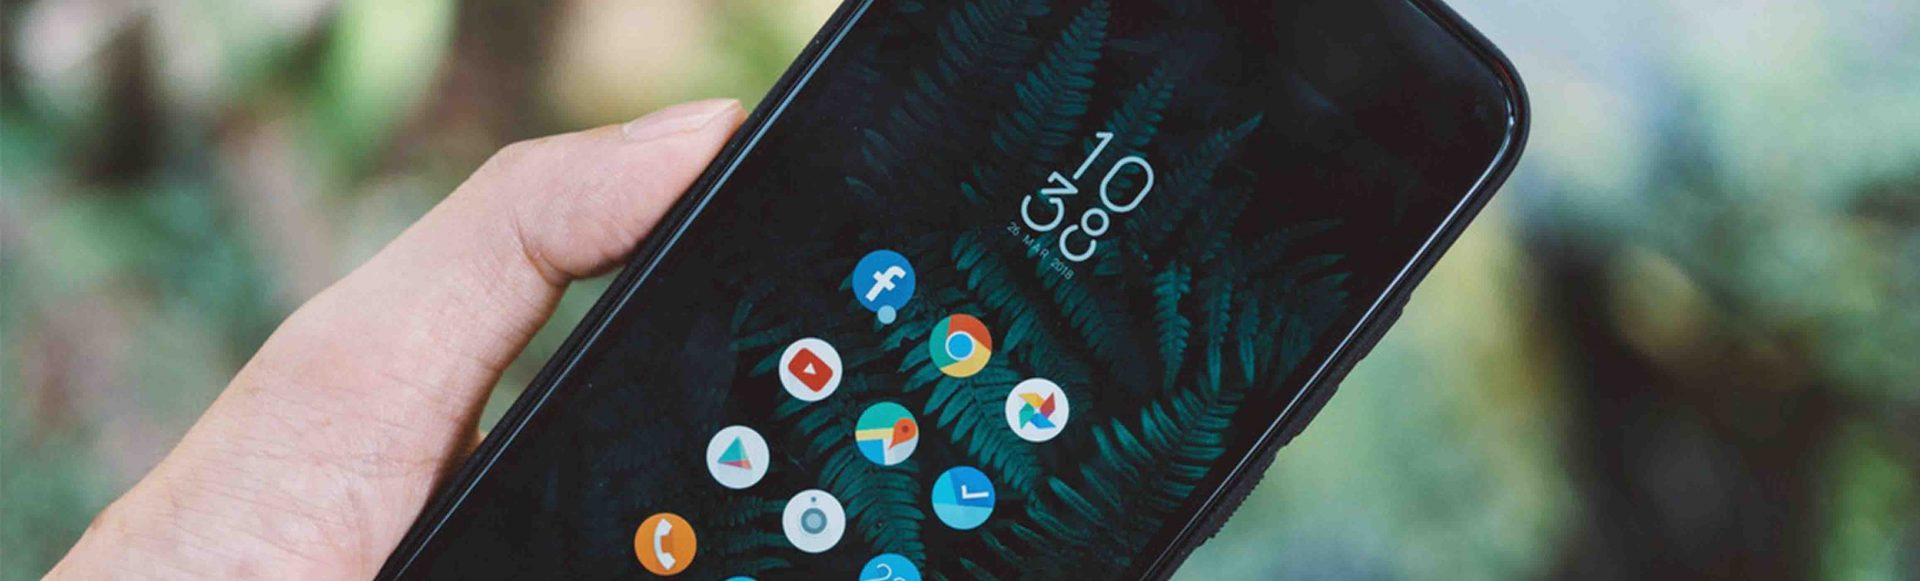 10 Best Free Android Apps for April 2019